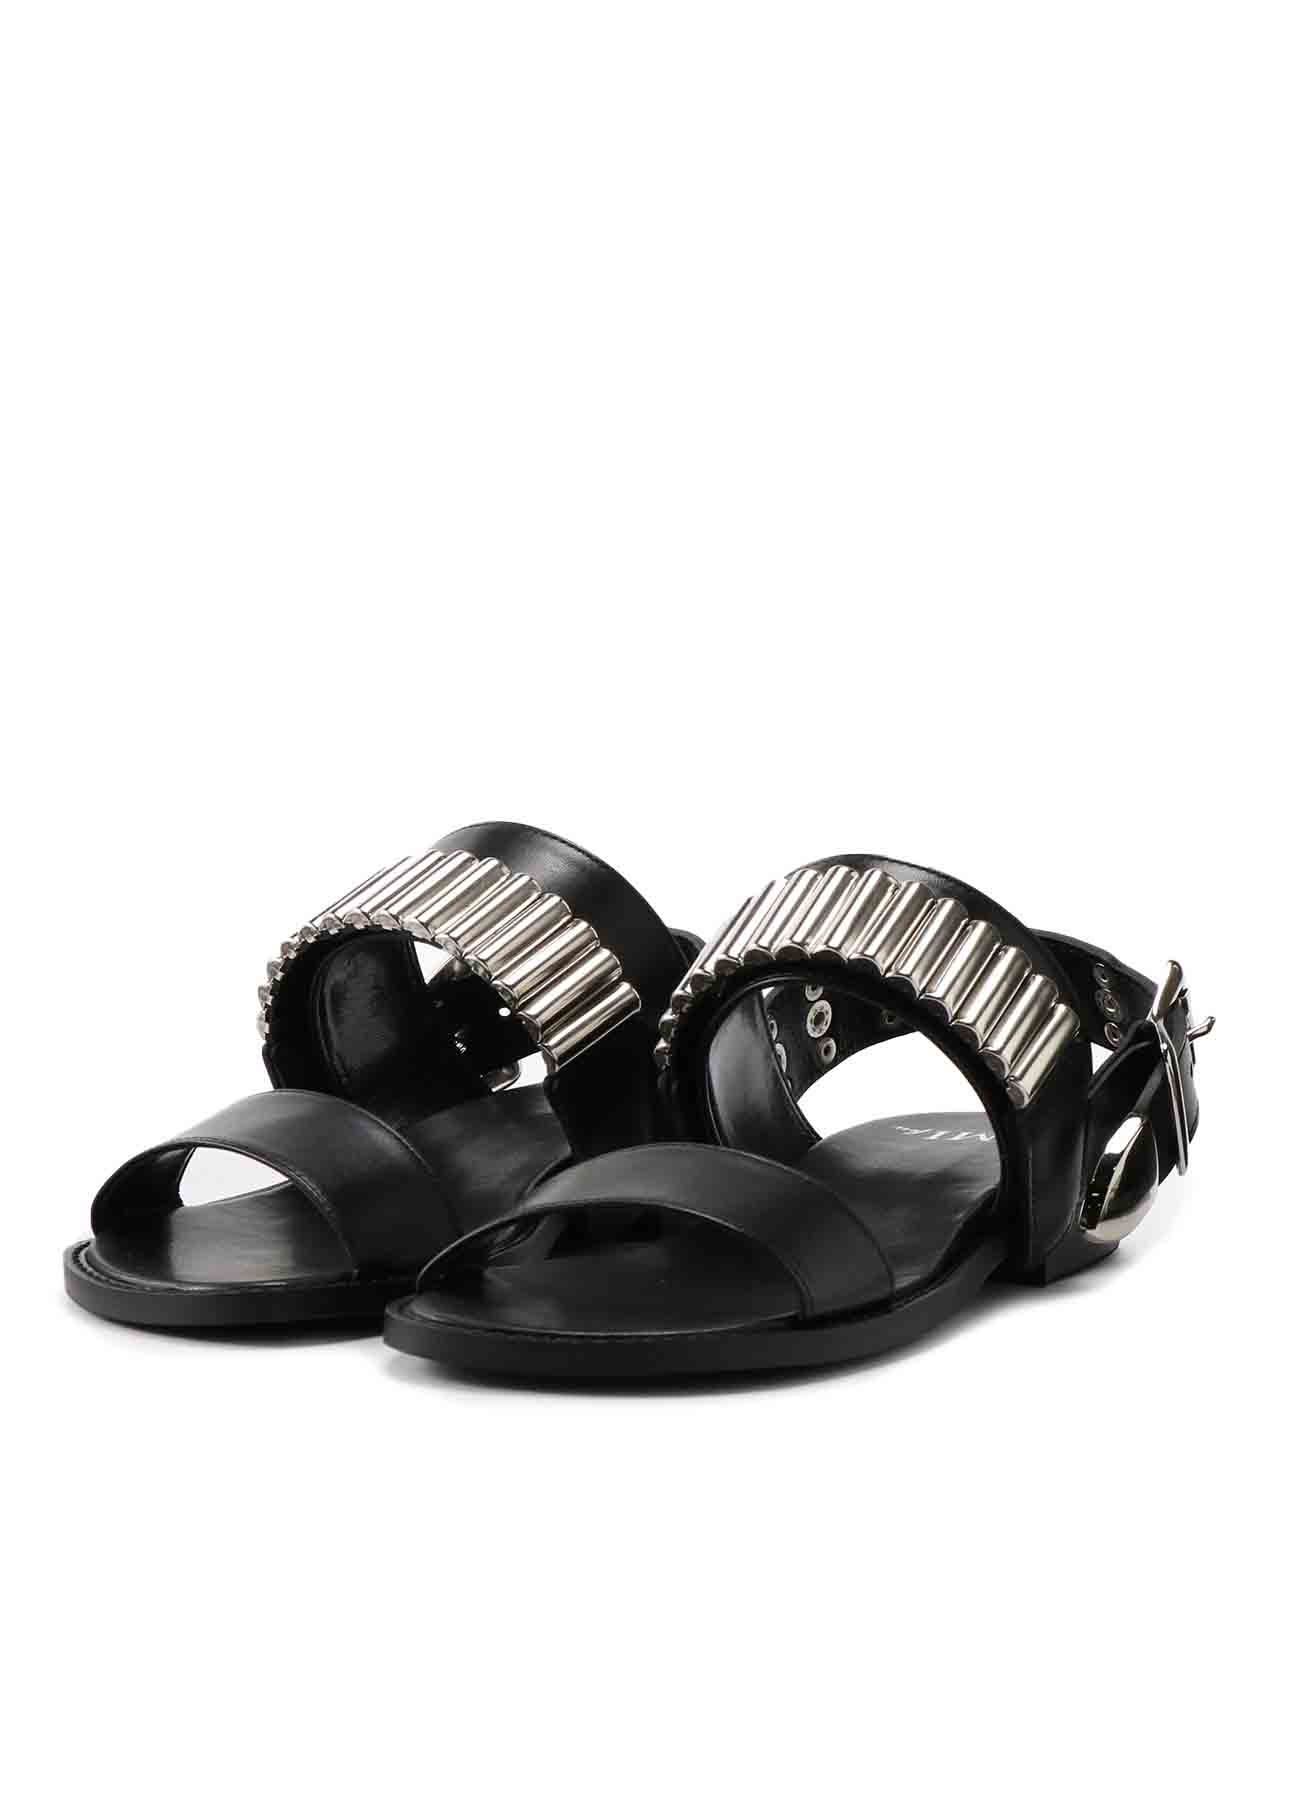 Smooth Leather 2 Way Rivet Sandal